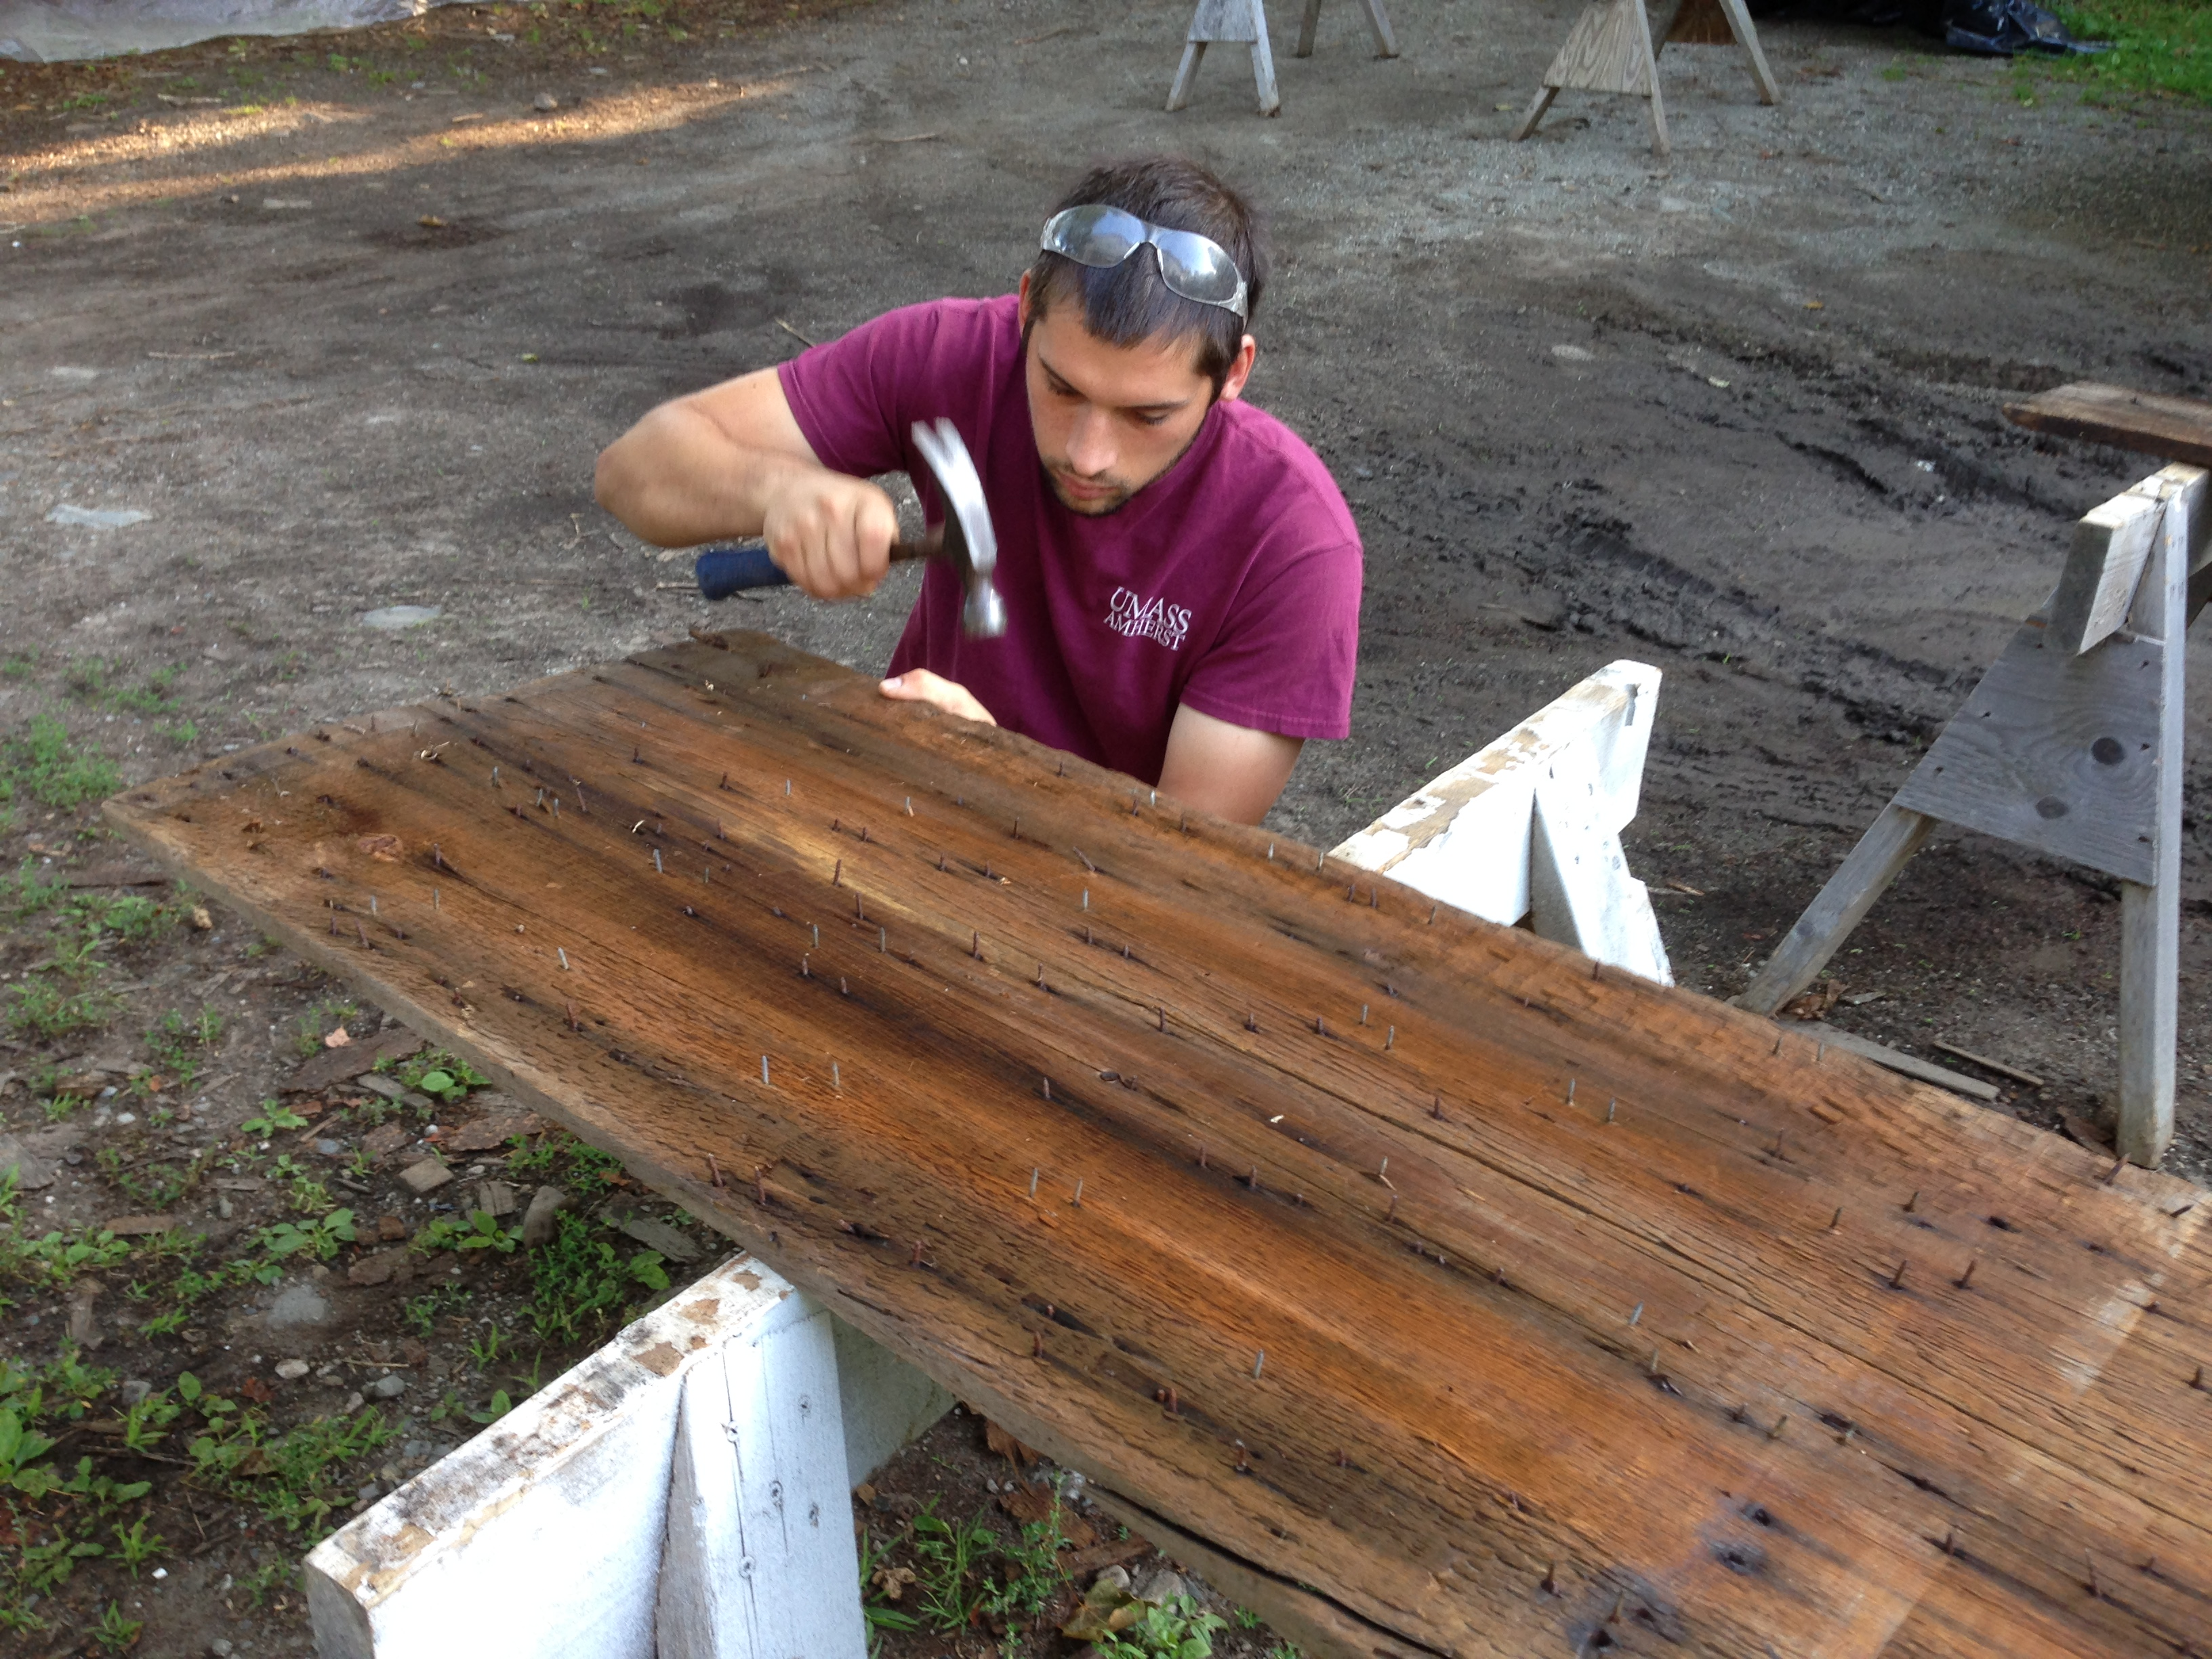 Removing nails to restore wooden timbers